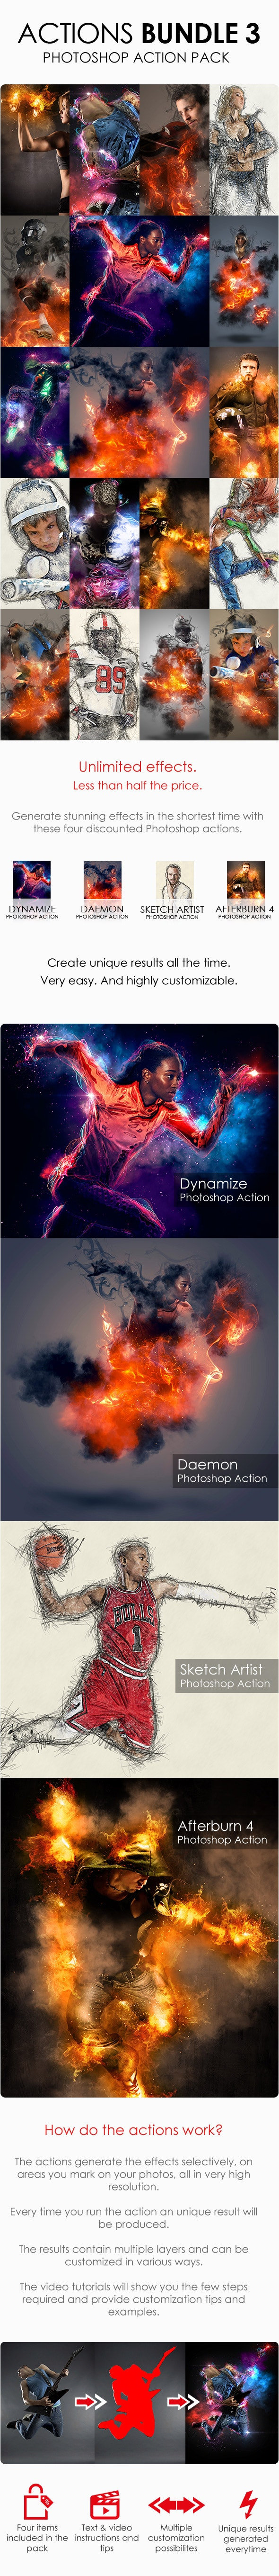 Actions Bundle 3 - Photo Effects Actions